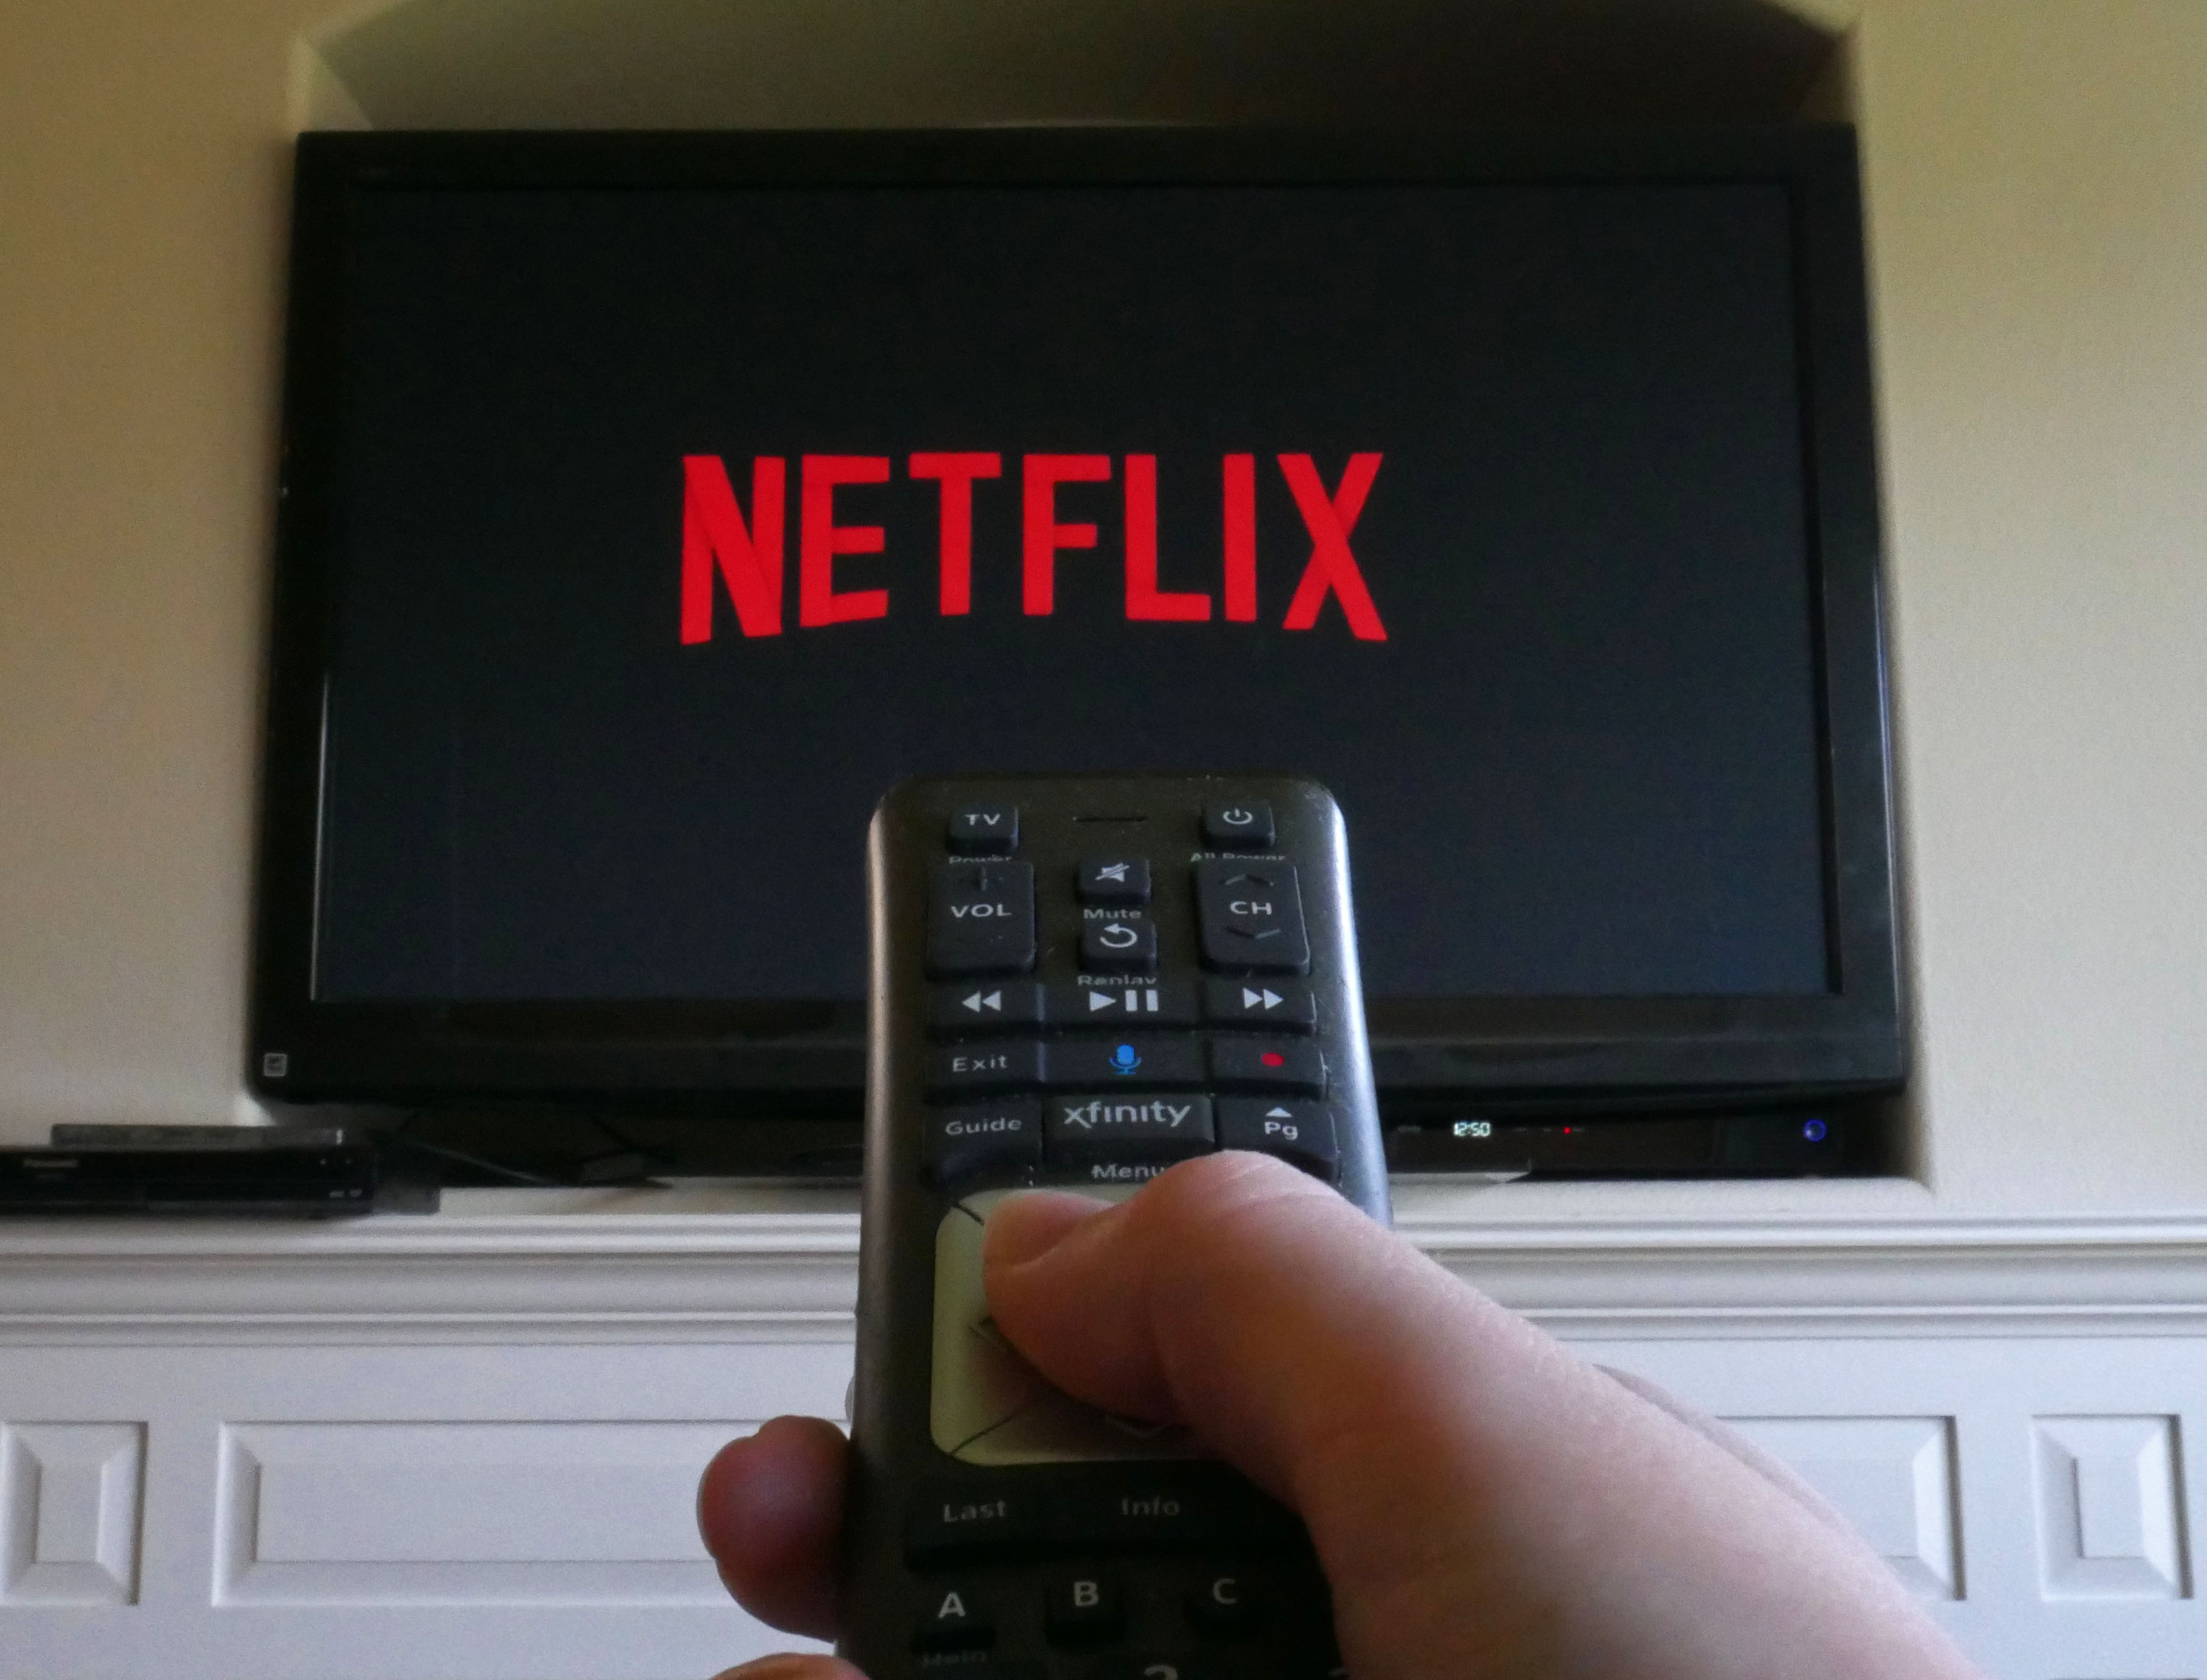 A photograph of a human hand pointing a TV remote control at a flat screen that says 'Netflix' in its signature red hue.